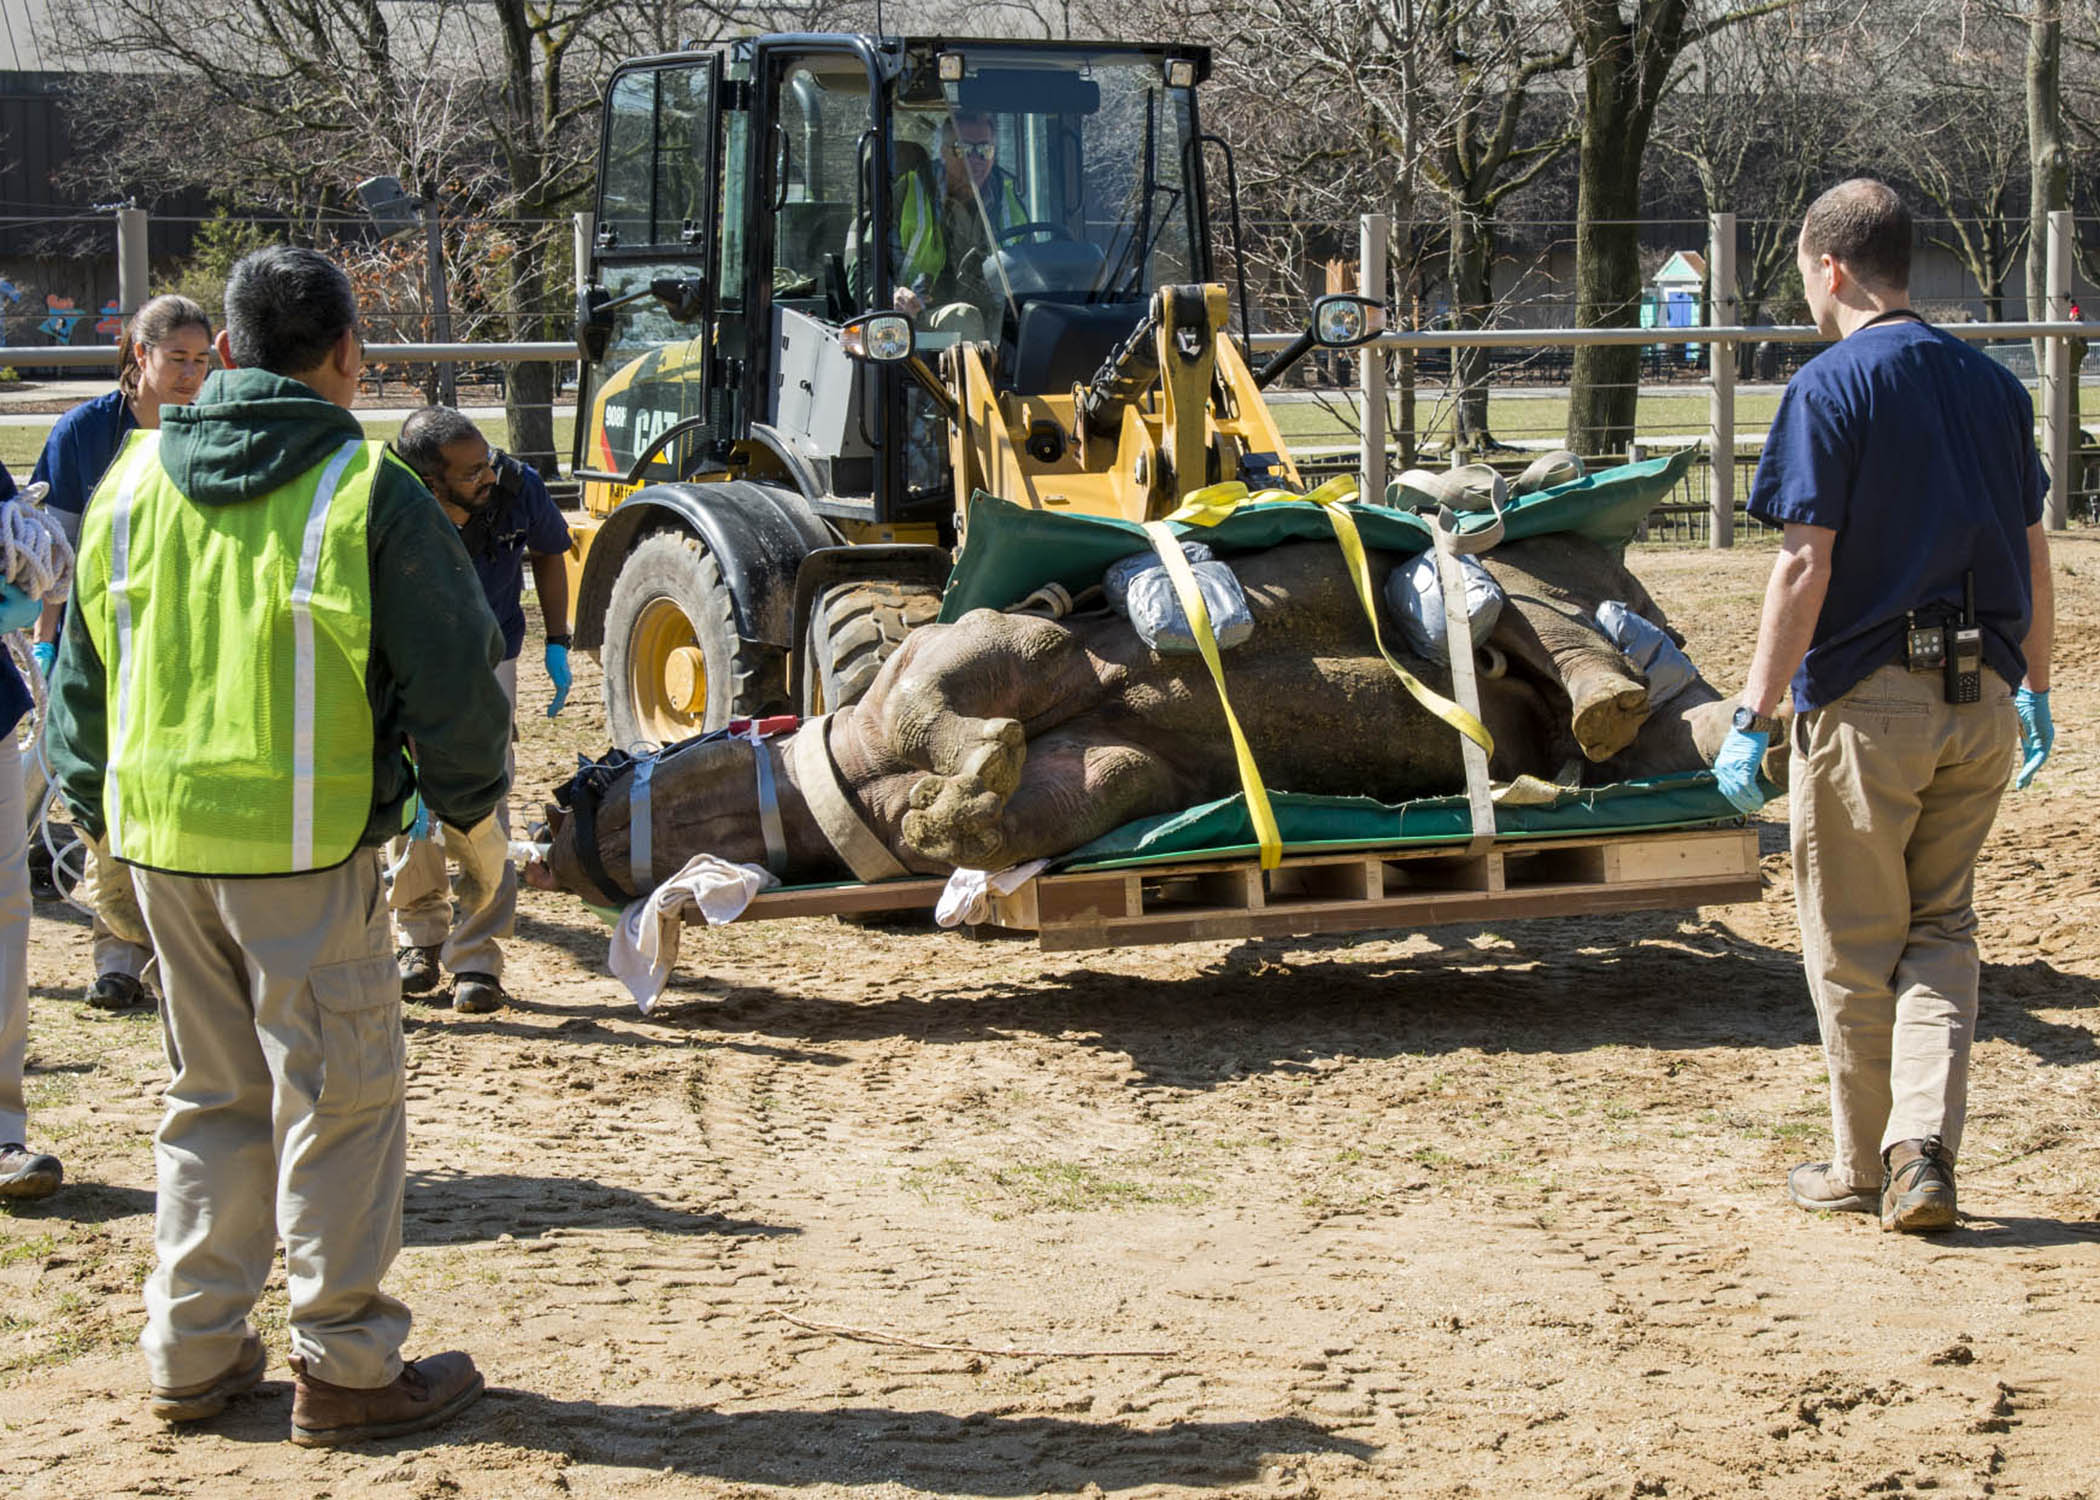 <div class='meta'><div class='origin-logo' data-origin='none'></div><span class='caption-text' data-credit='Kelly Tone/Chicago Zoological Society'>Layla, a 2,300-pound eastern black rhinoceros at Brookfield Zoo, is lifted by a front-end loader, manned by Greg Wall, an assistant lead groundskeeper,.</span></div>